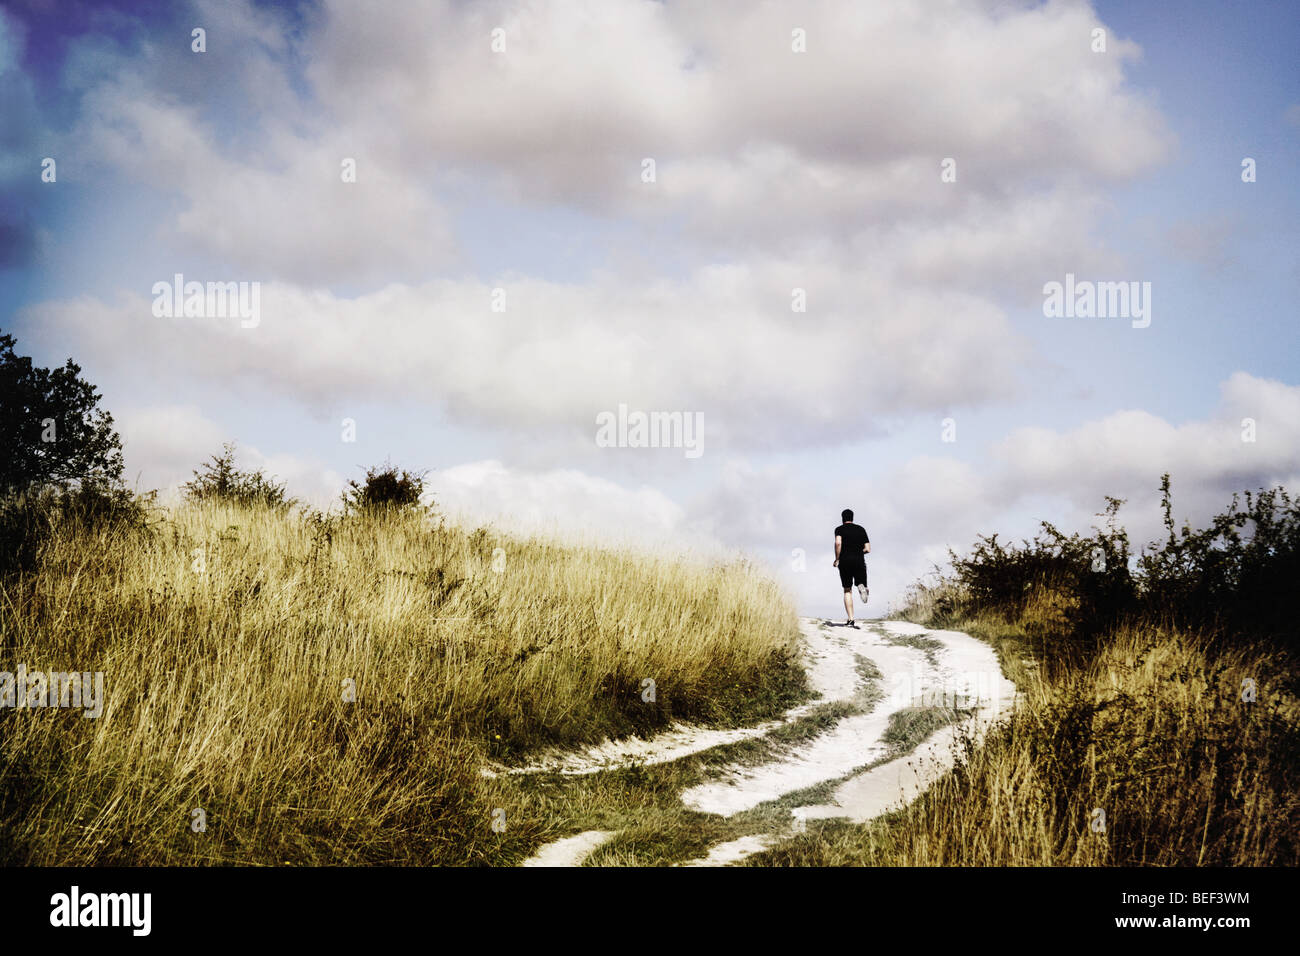 man running on a pathway through fields - Stock Image